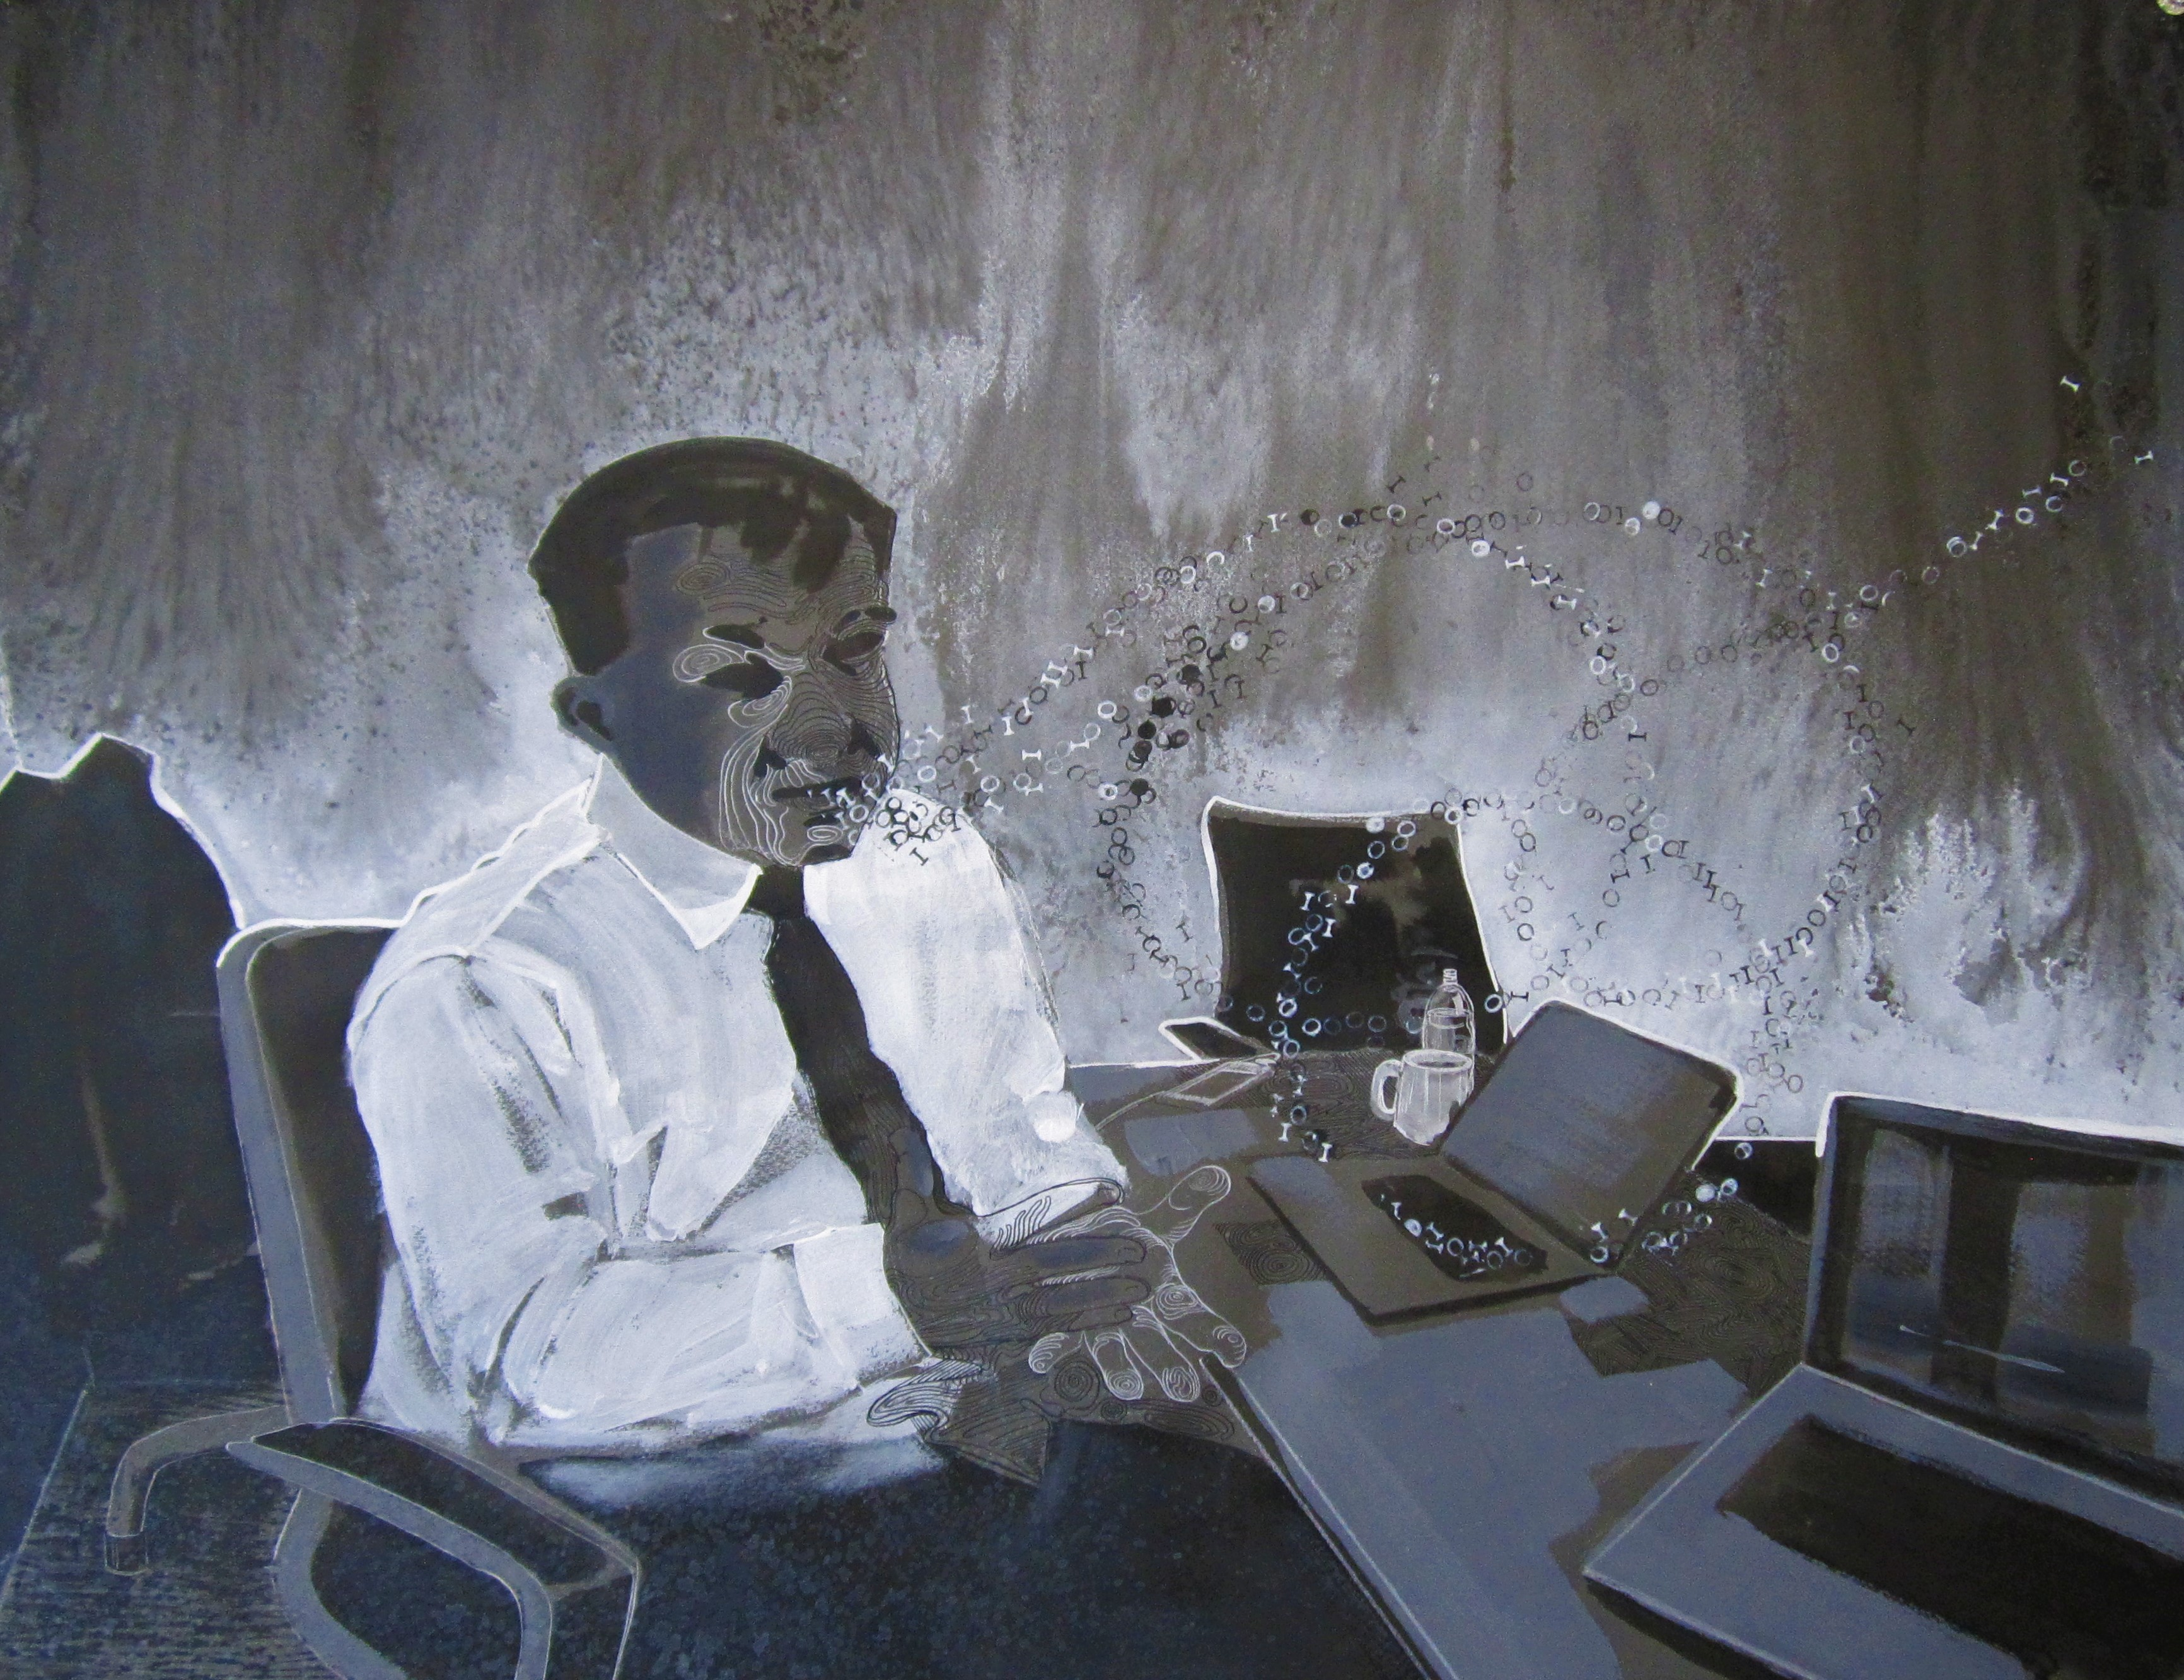 man at a desk with work devices surrounded by a cloud of 1s and 0s